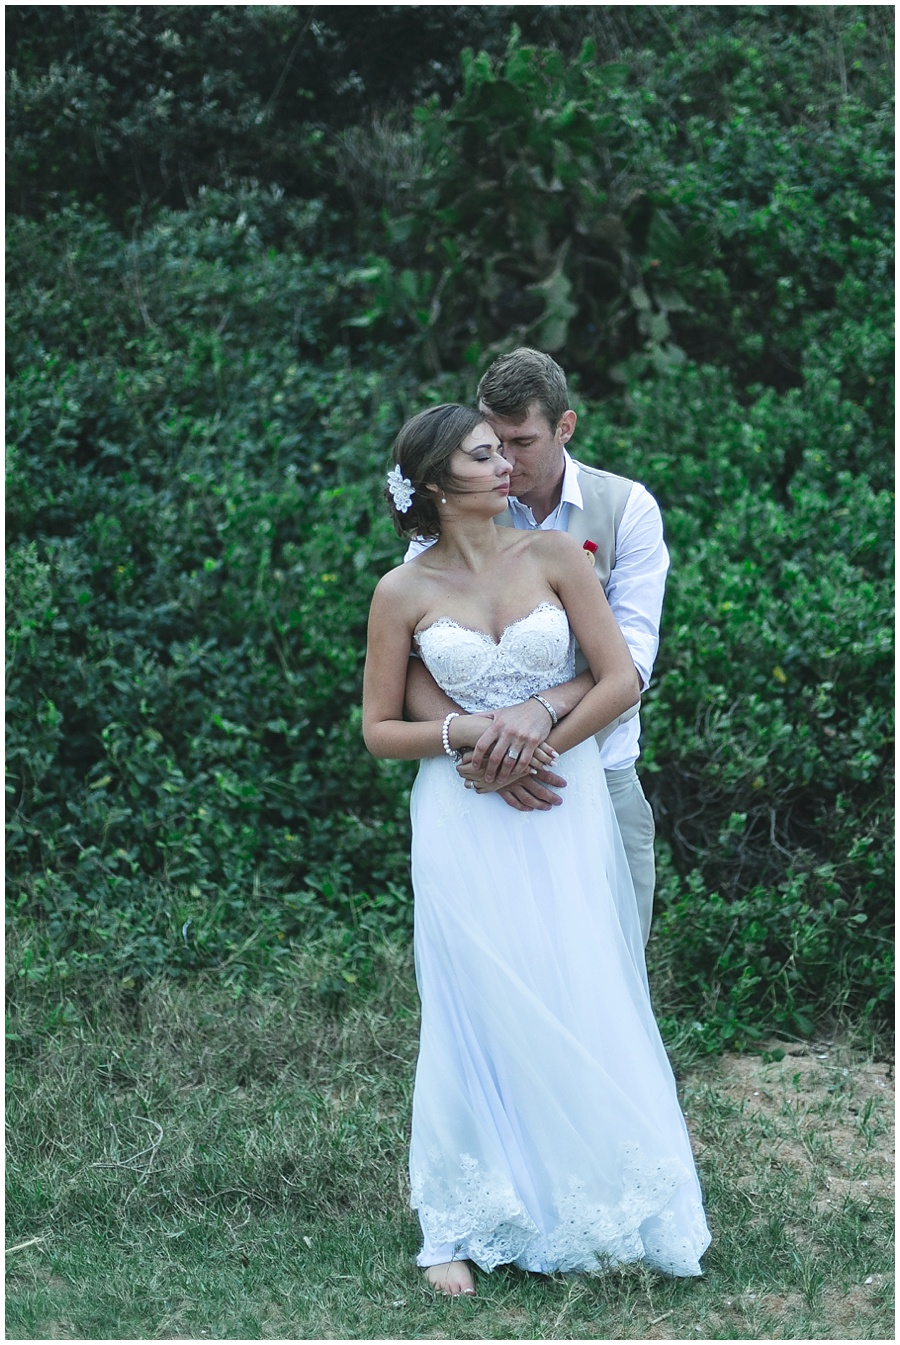 Chantelle-Darren-Wedding-Ballito-Bravo-Photography_0044